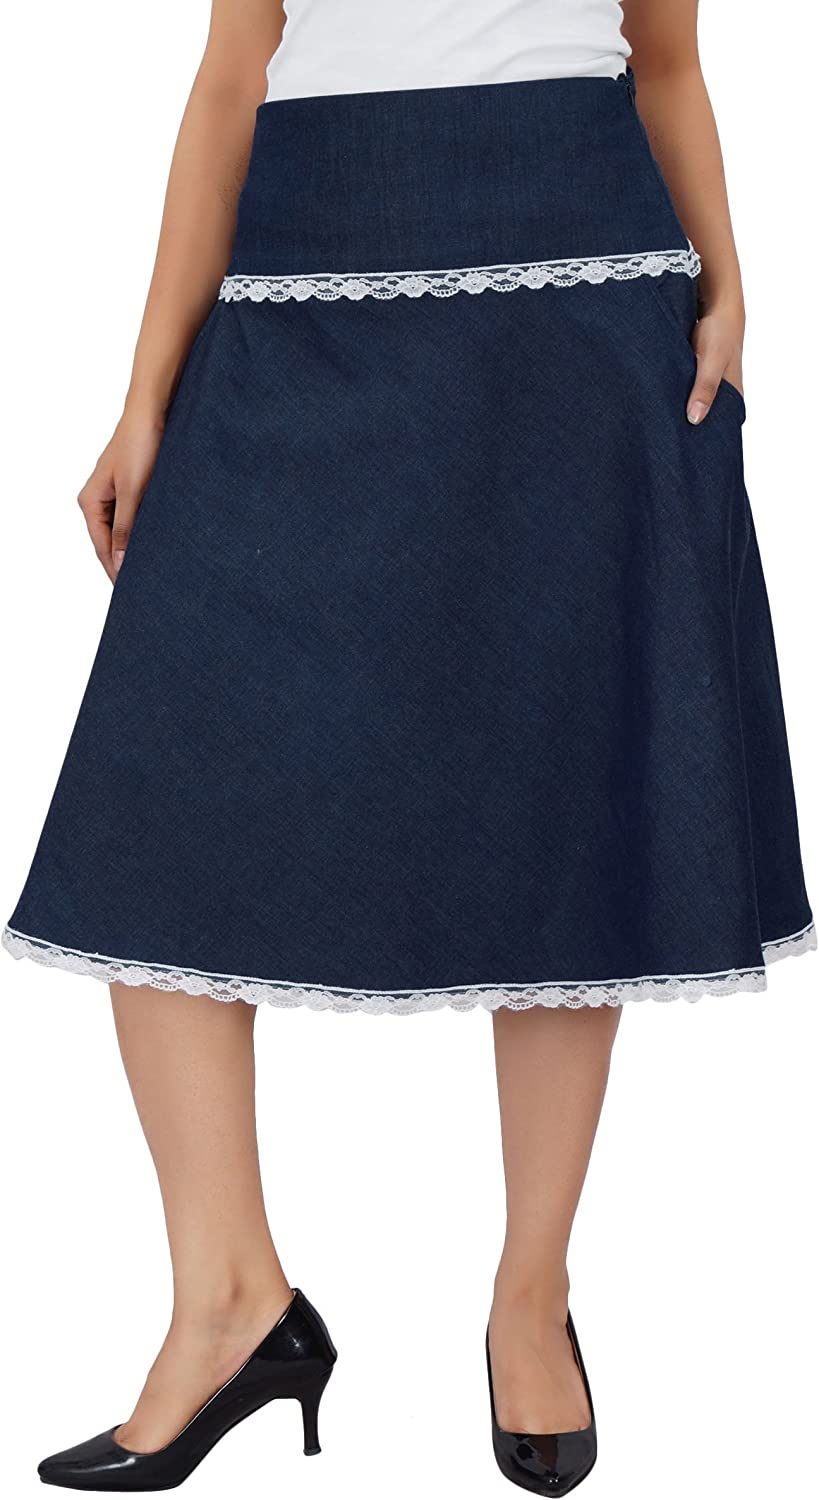 Bimba Women Knee Length Denim Skirt with Lace Detail Casual Chic A-Line Skirts